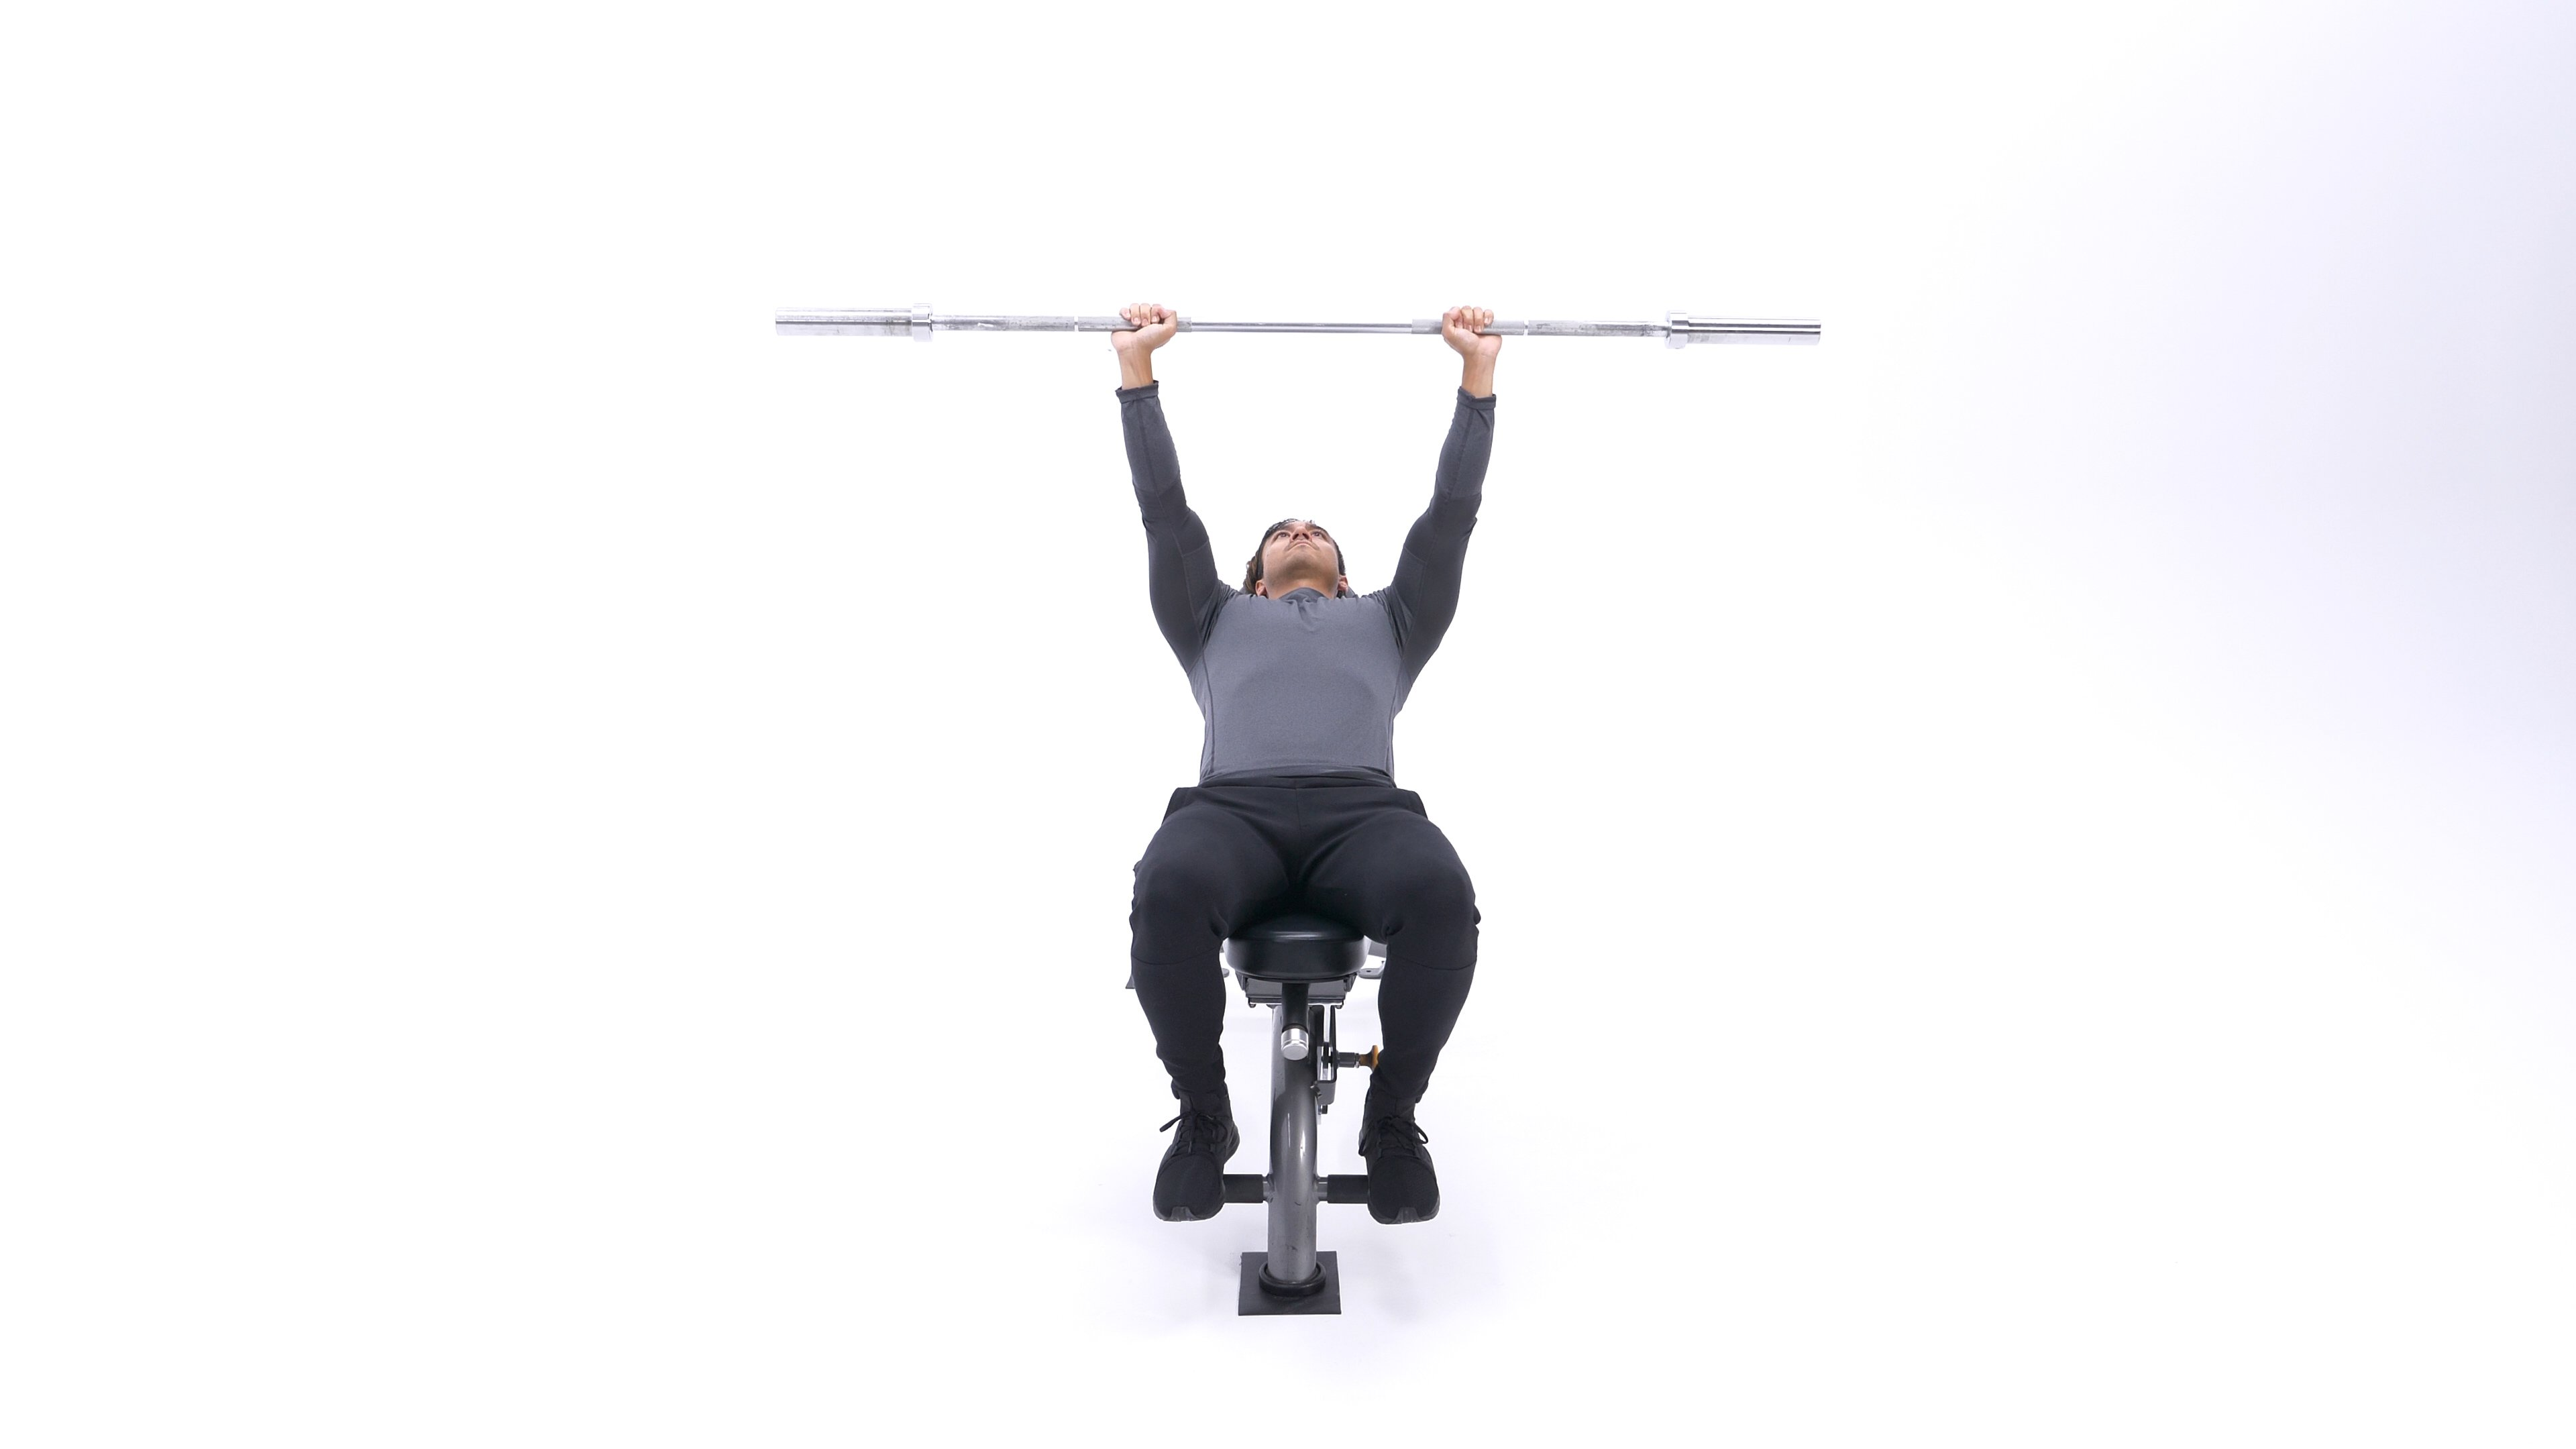 Incline barbell shoulder protraction image